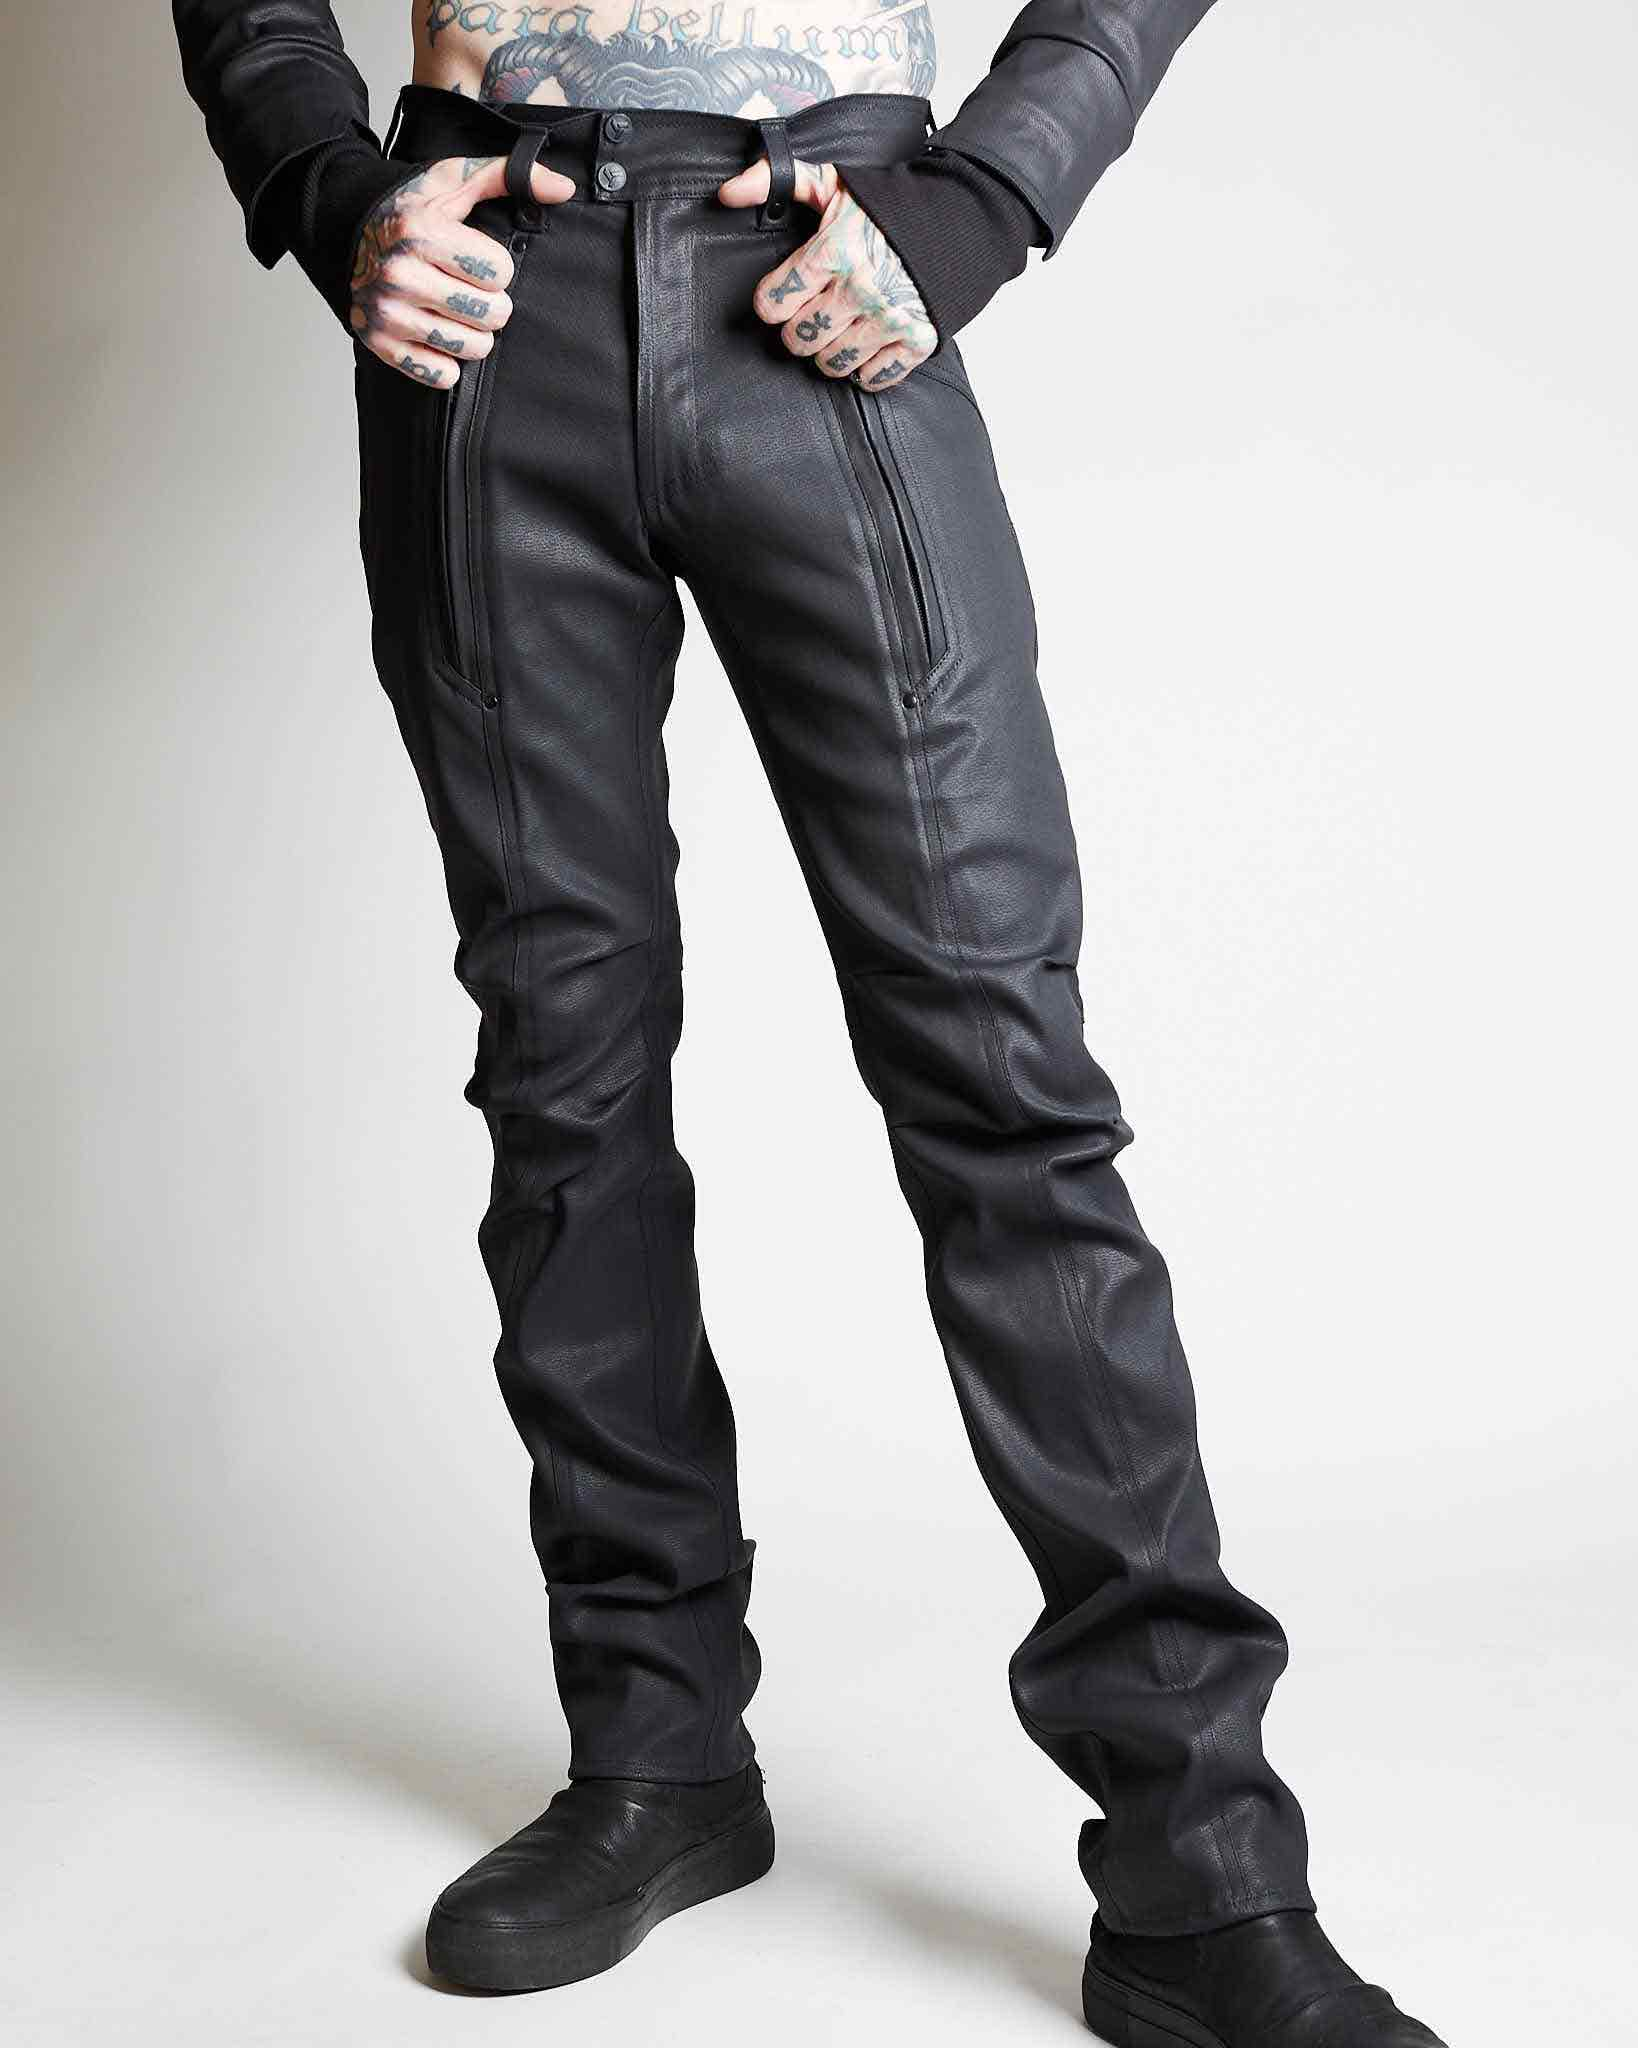 designer cargo pants in cyberpunk fashion